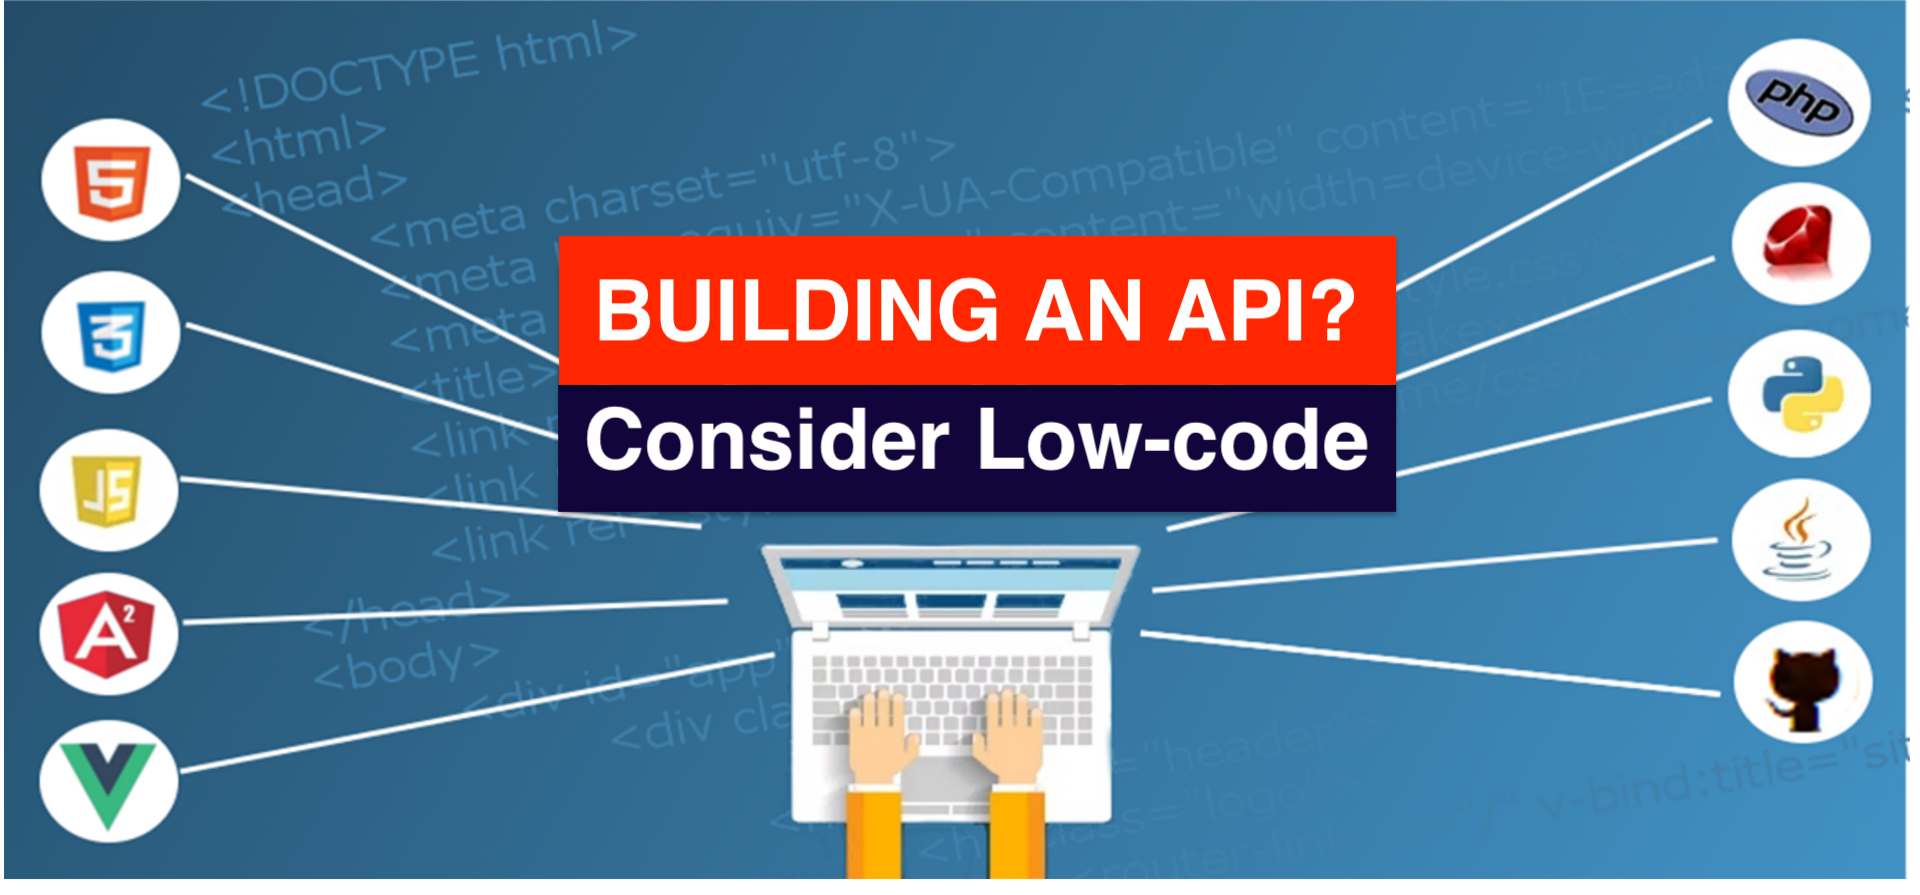 /why-you-should-consider-low-code-approach-to-building-a-rest-api-tv323esr feature image